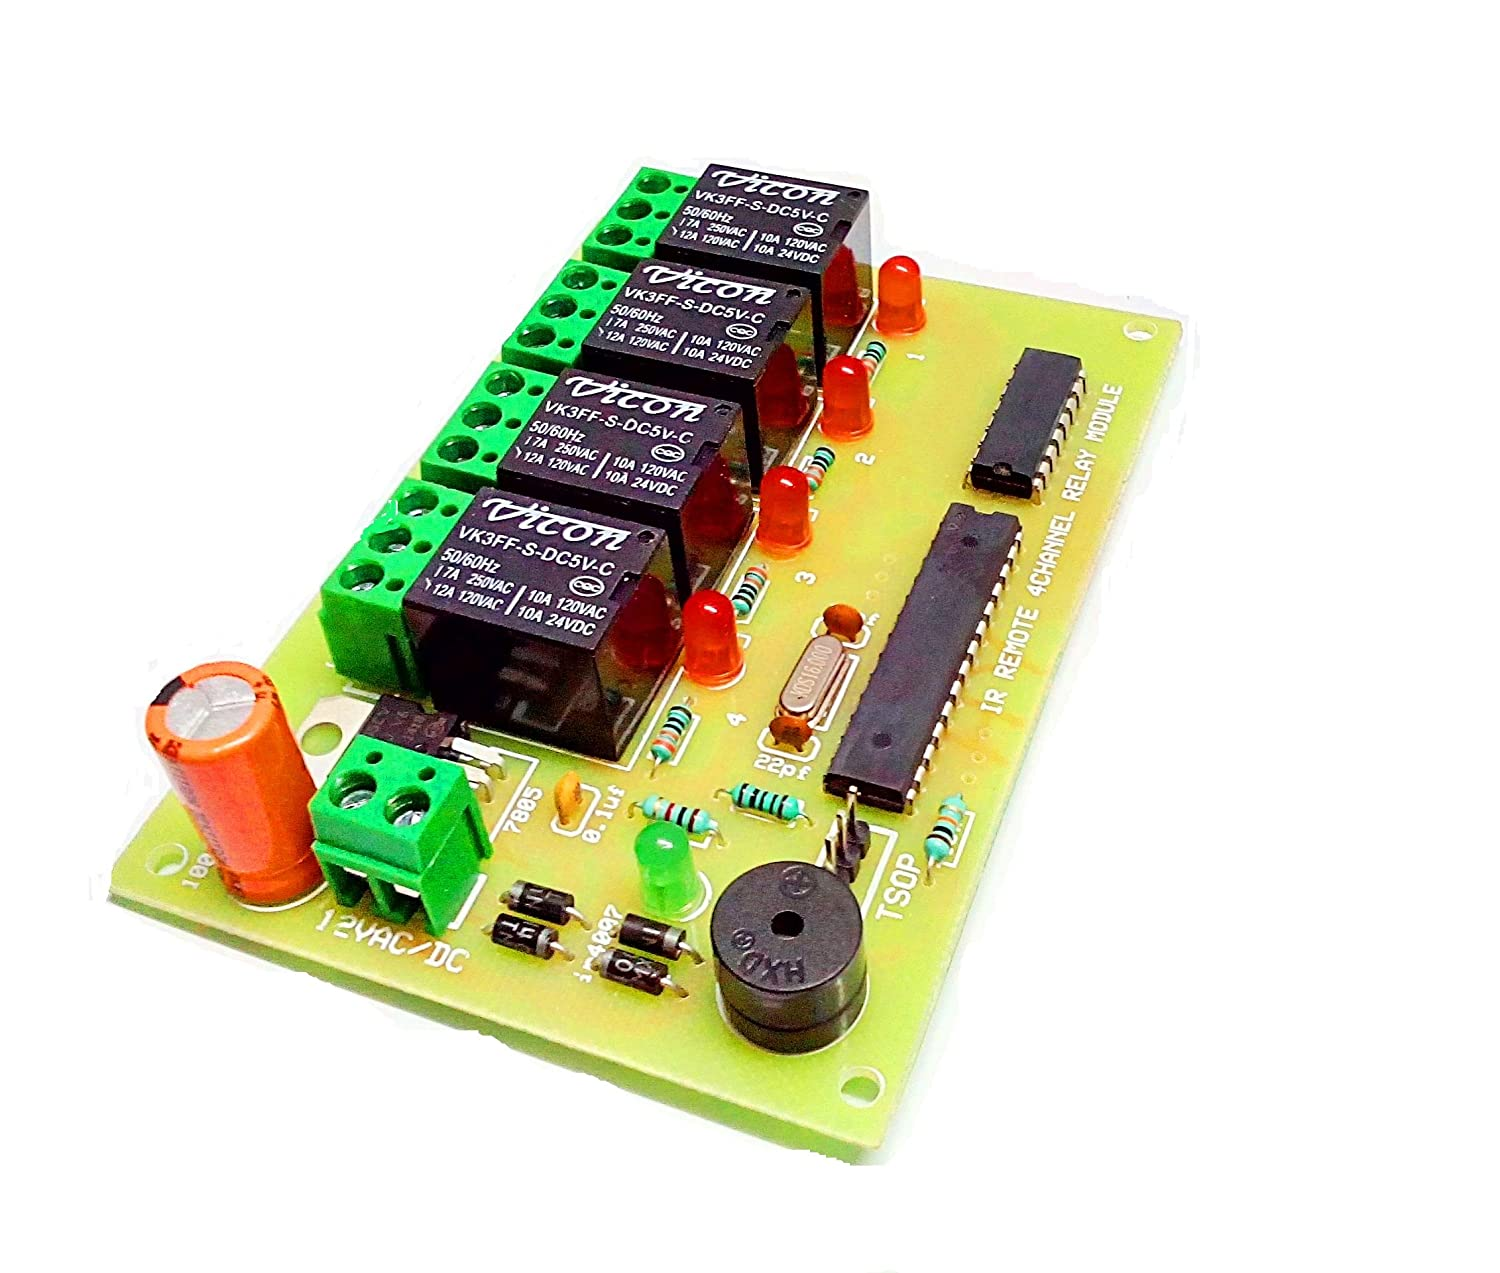 Insignia Labs Wireless Ir 4 Channel Remote Control Relay Board Circuit By Using A To Operate The Ac Mains Appliances An Module Light Fan Industrial Scientific